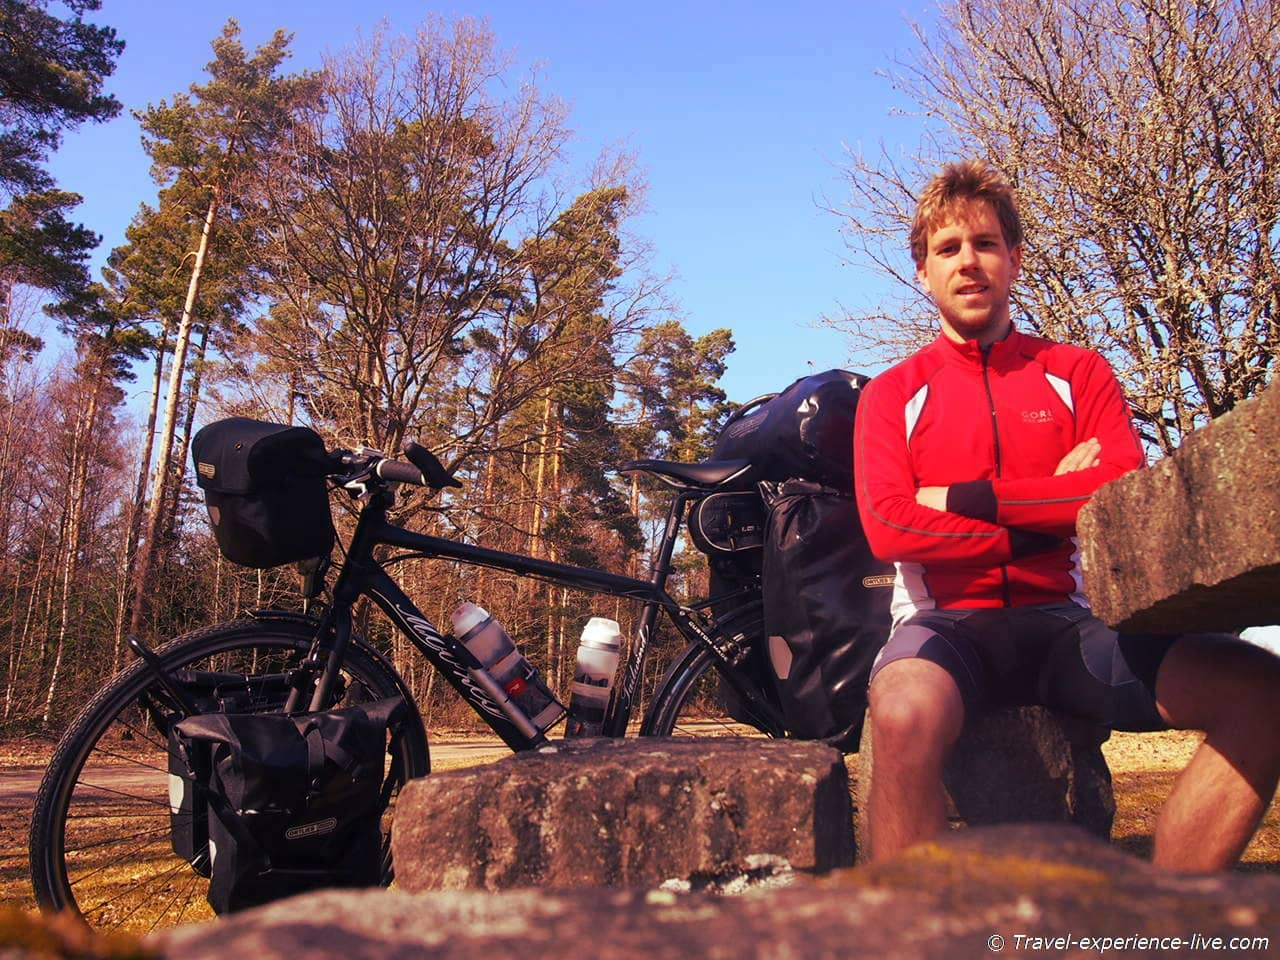 North Cape Cycling Adventure – Day 15 to 22